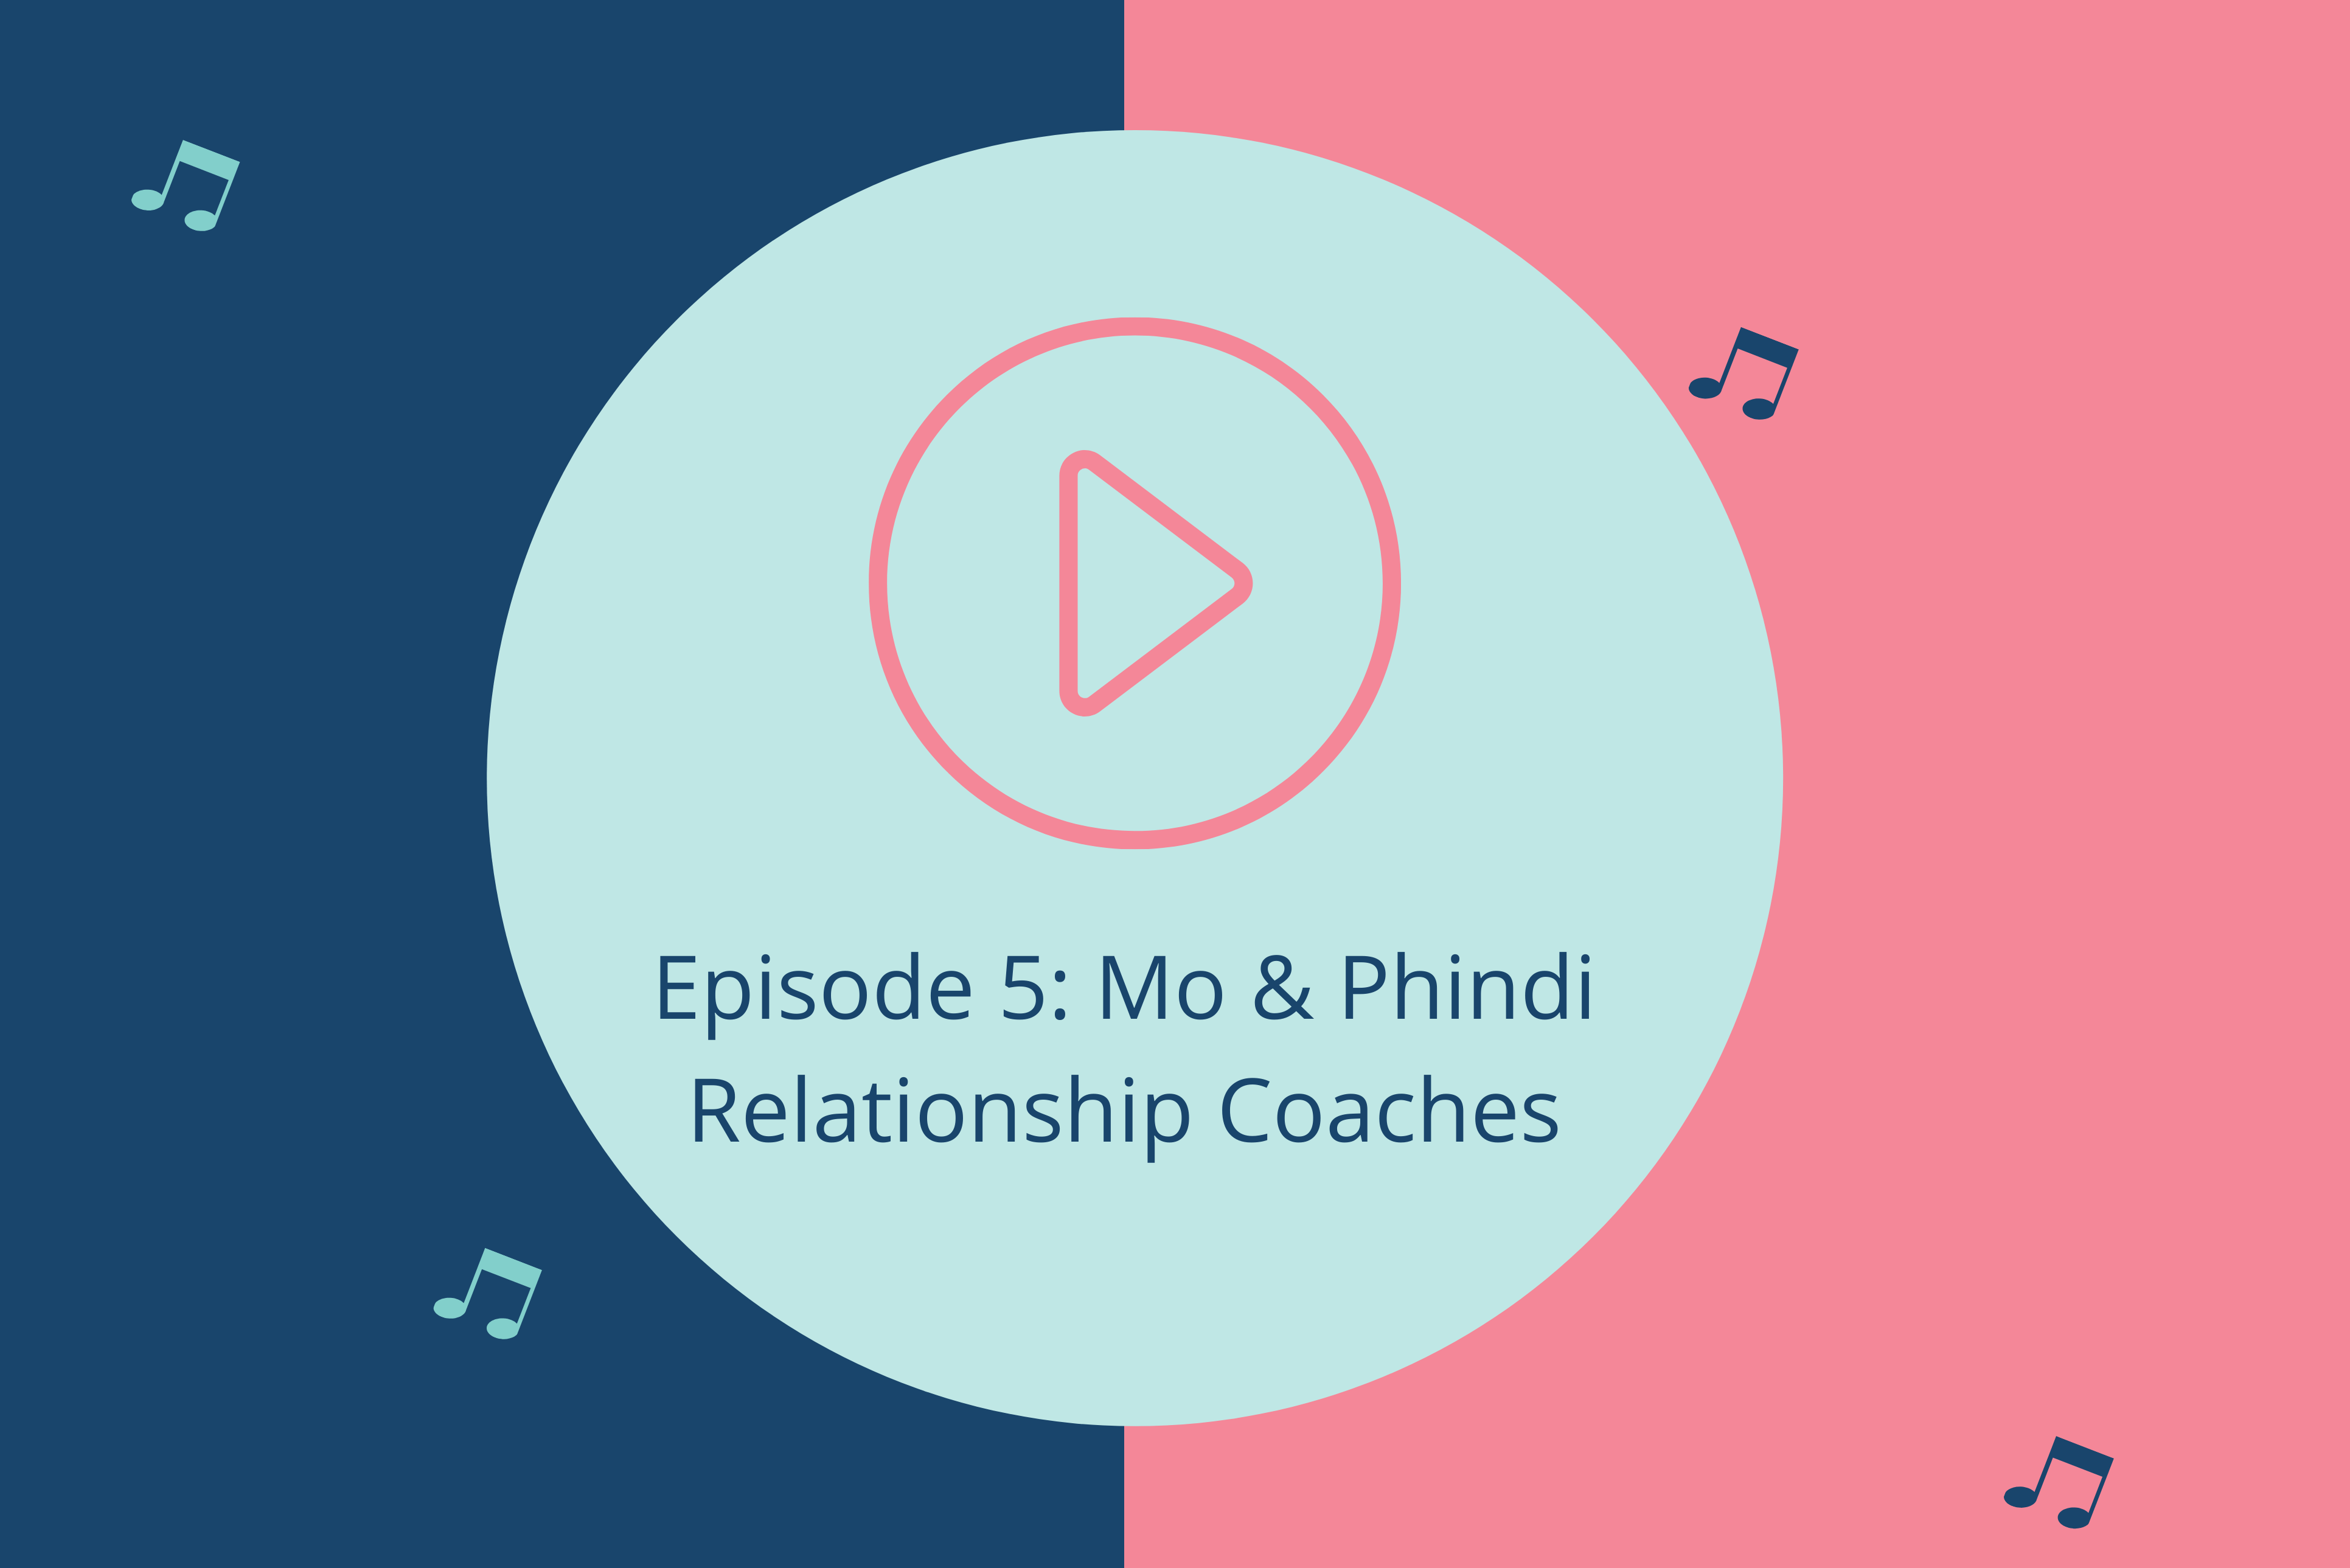 Conversations with Relationship Coaches Mo & Phindi